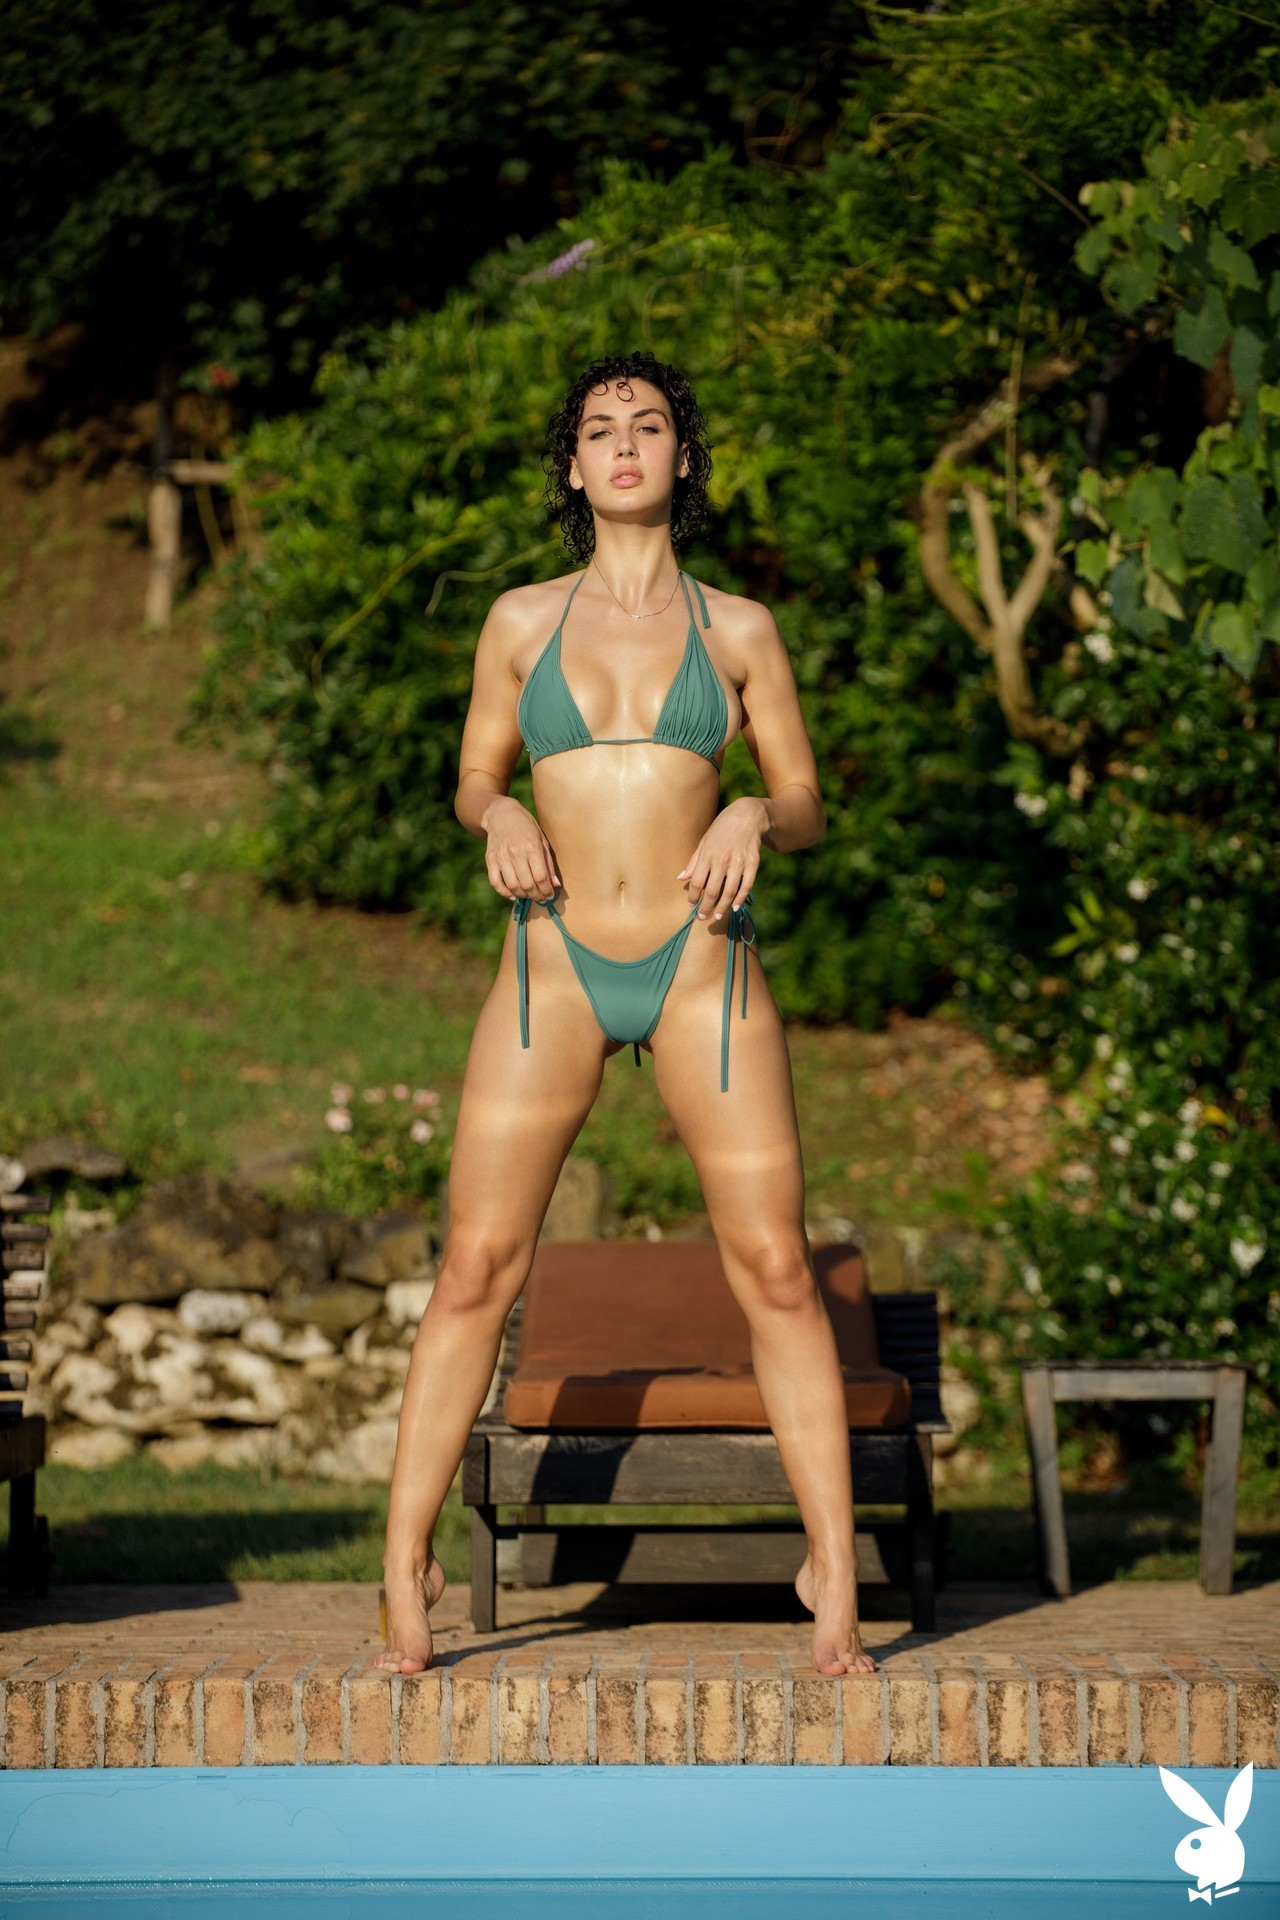 Gena Miller In Immerse Yourself Playboy Plus (10)